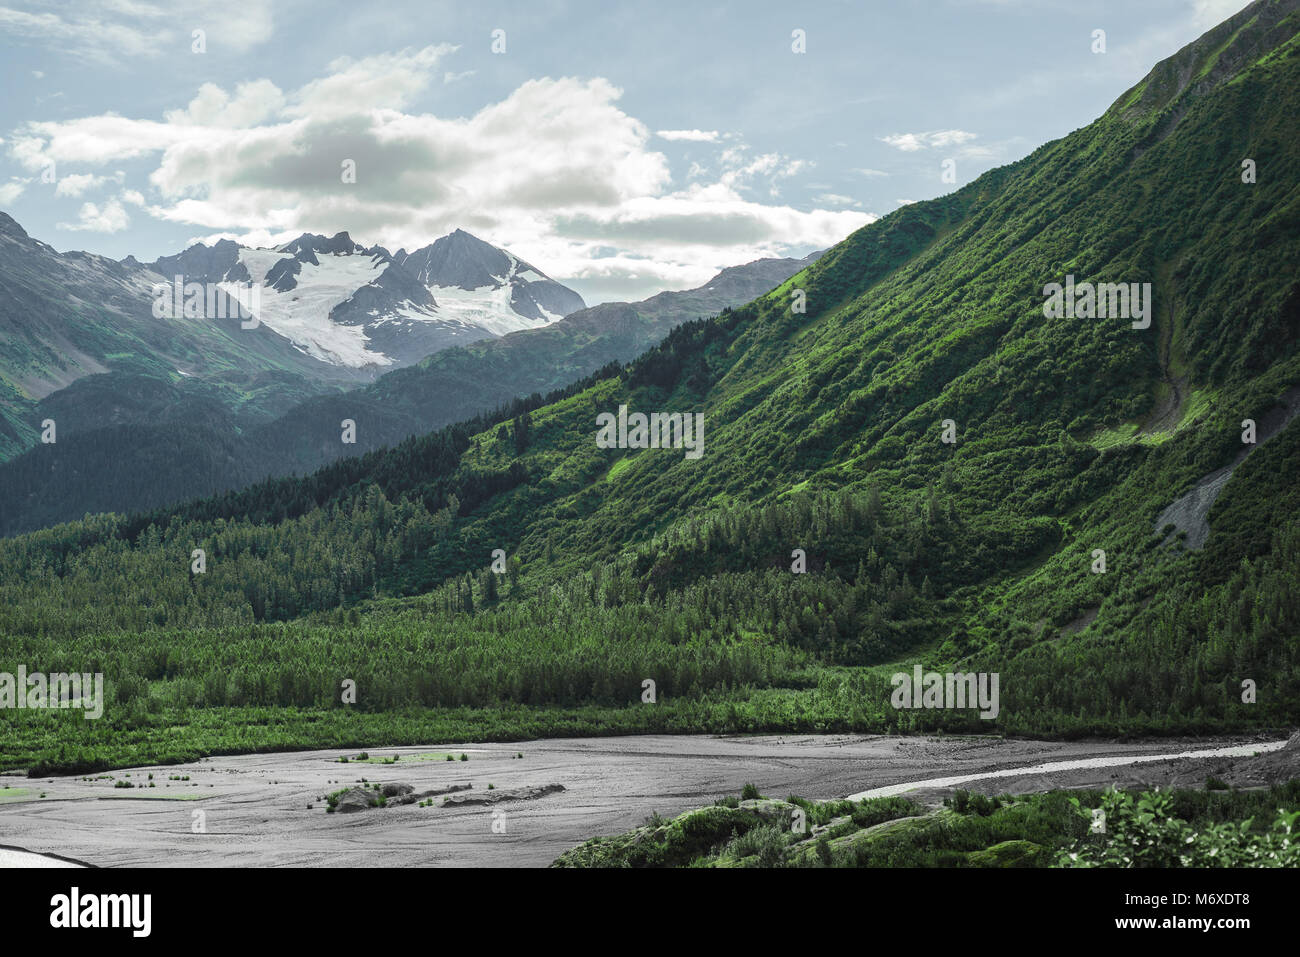 Kenai Fjords National Park - Stock Image